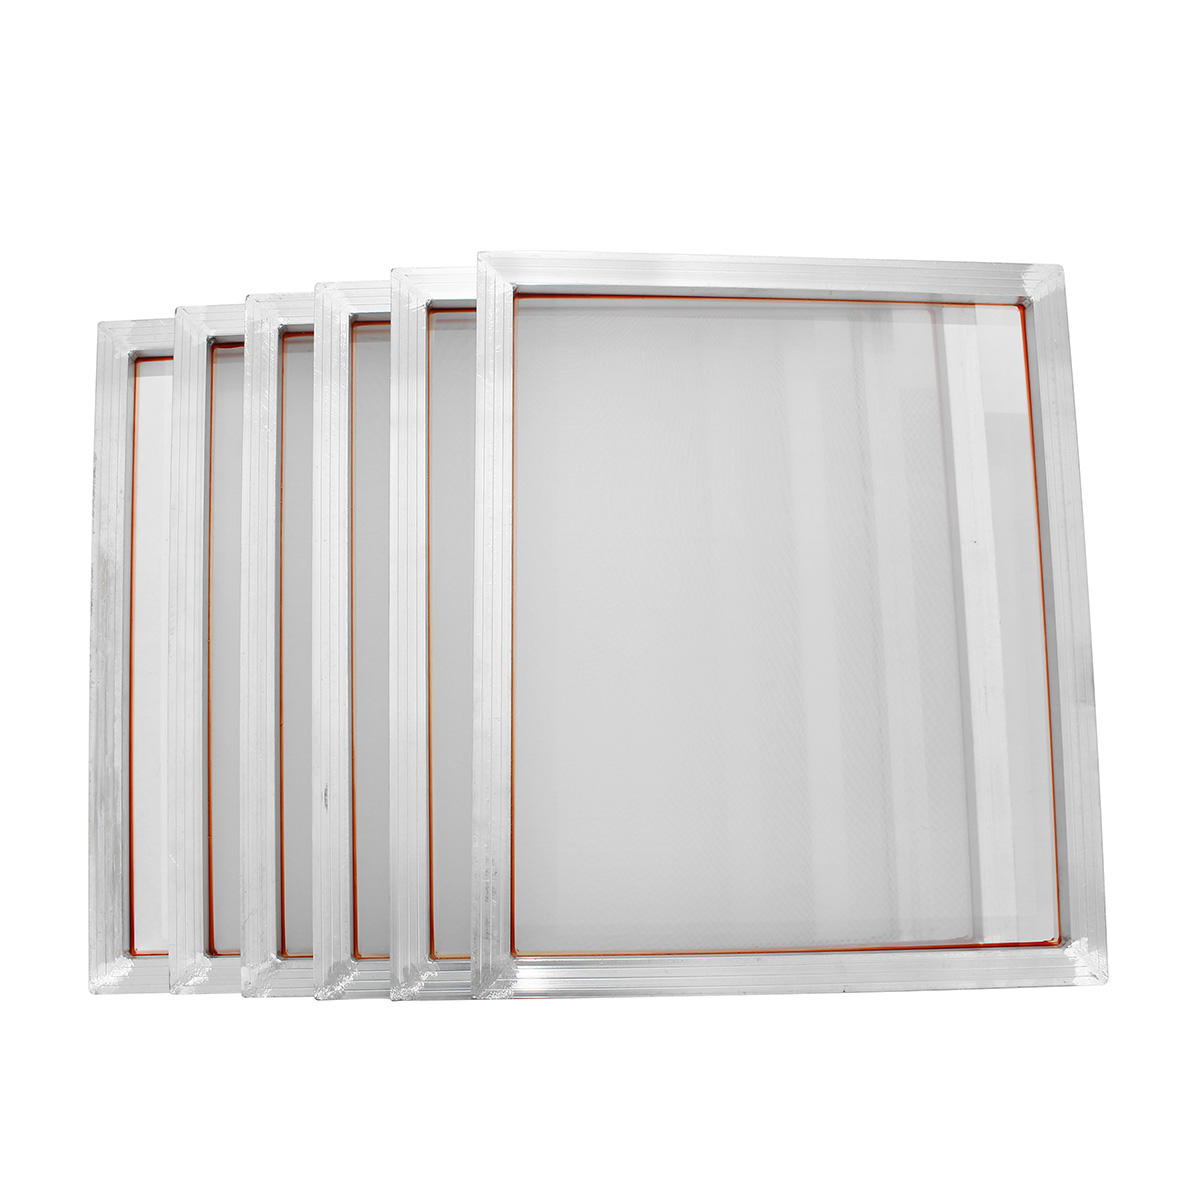 160 Mesh Silk Screen Printing Screen With Aluminum Frame White Polyester